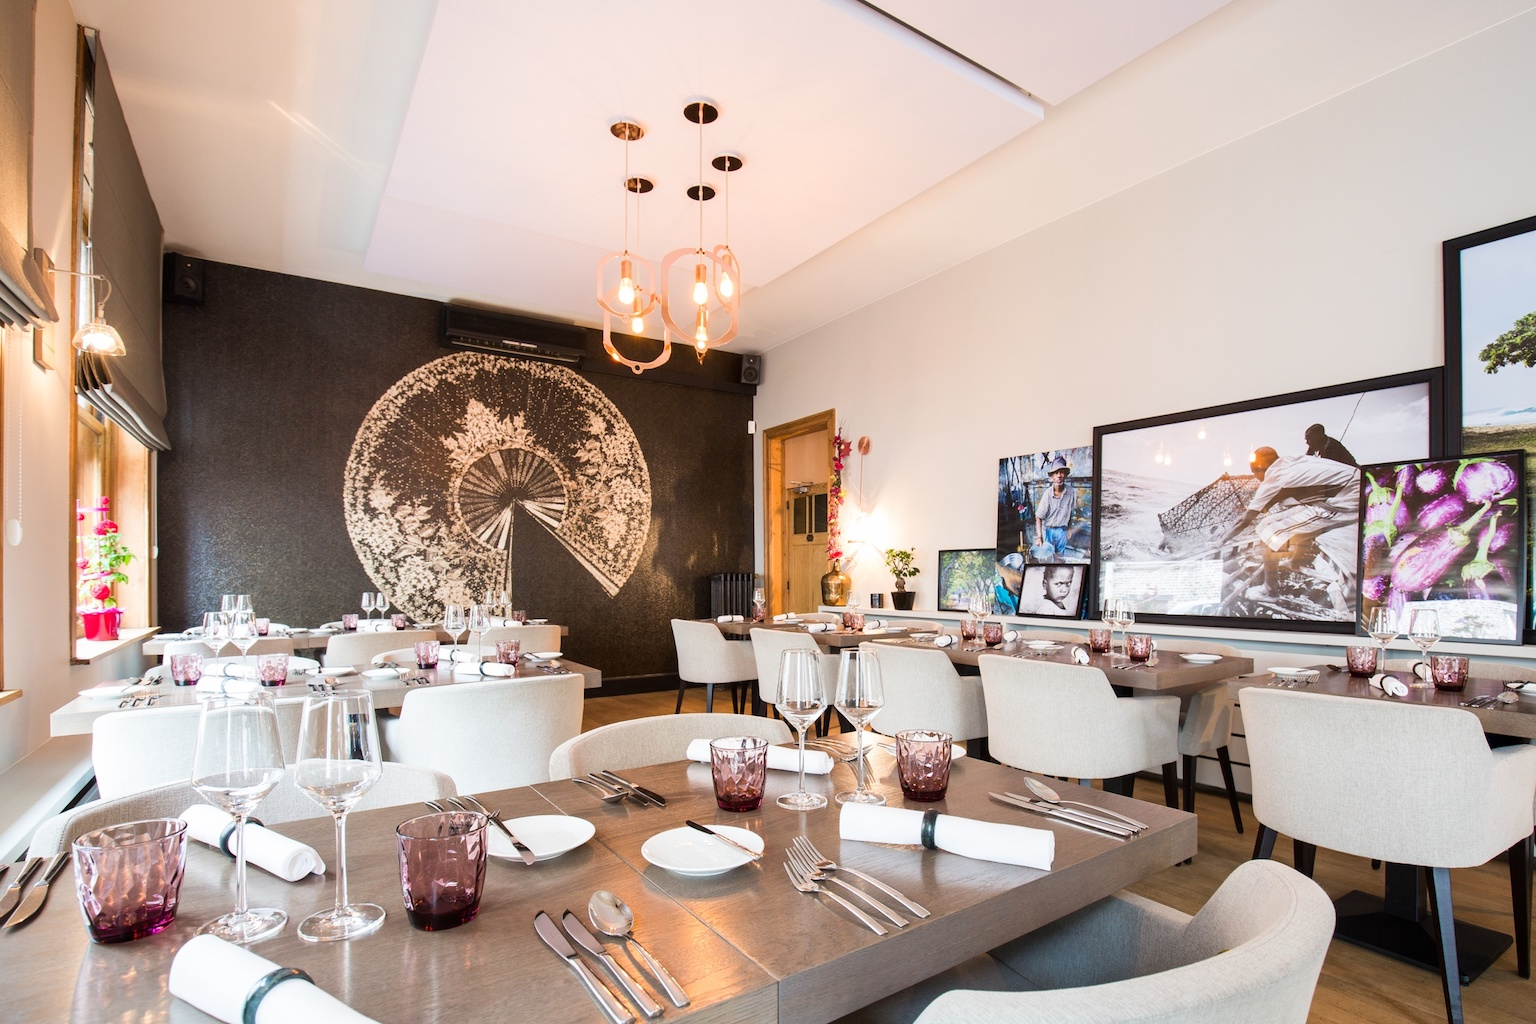 Brinz'l: suprises as restaurant and as new caterer in Brussels